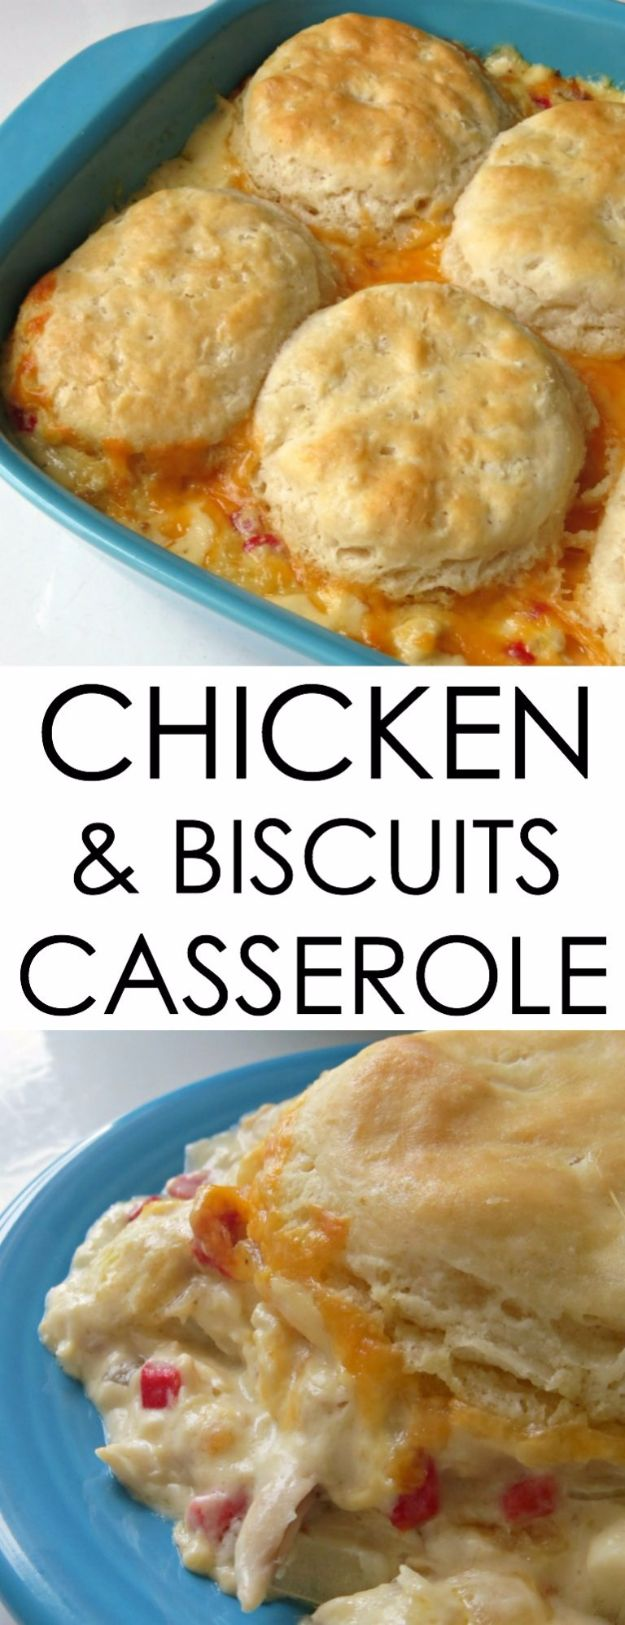 Best Canned Biscuit Recipes - Chicken & Biscuits Casserole - Cool DIY Recipe Ideas You Can Make With A Can of Biscuits - Easy Breakfast, Lunch, Dinner and Desserts You Can Make From Pillsbury Pull Apart Biscuits - Garlic, Sour Cream, Ground Beef, Sweet and Savory, Ideas with Cheese - Delicious Meals on A Budget With Step by Step Tutorials